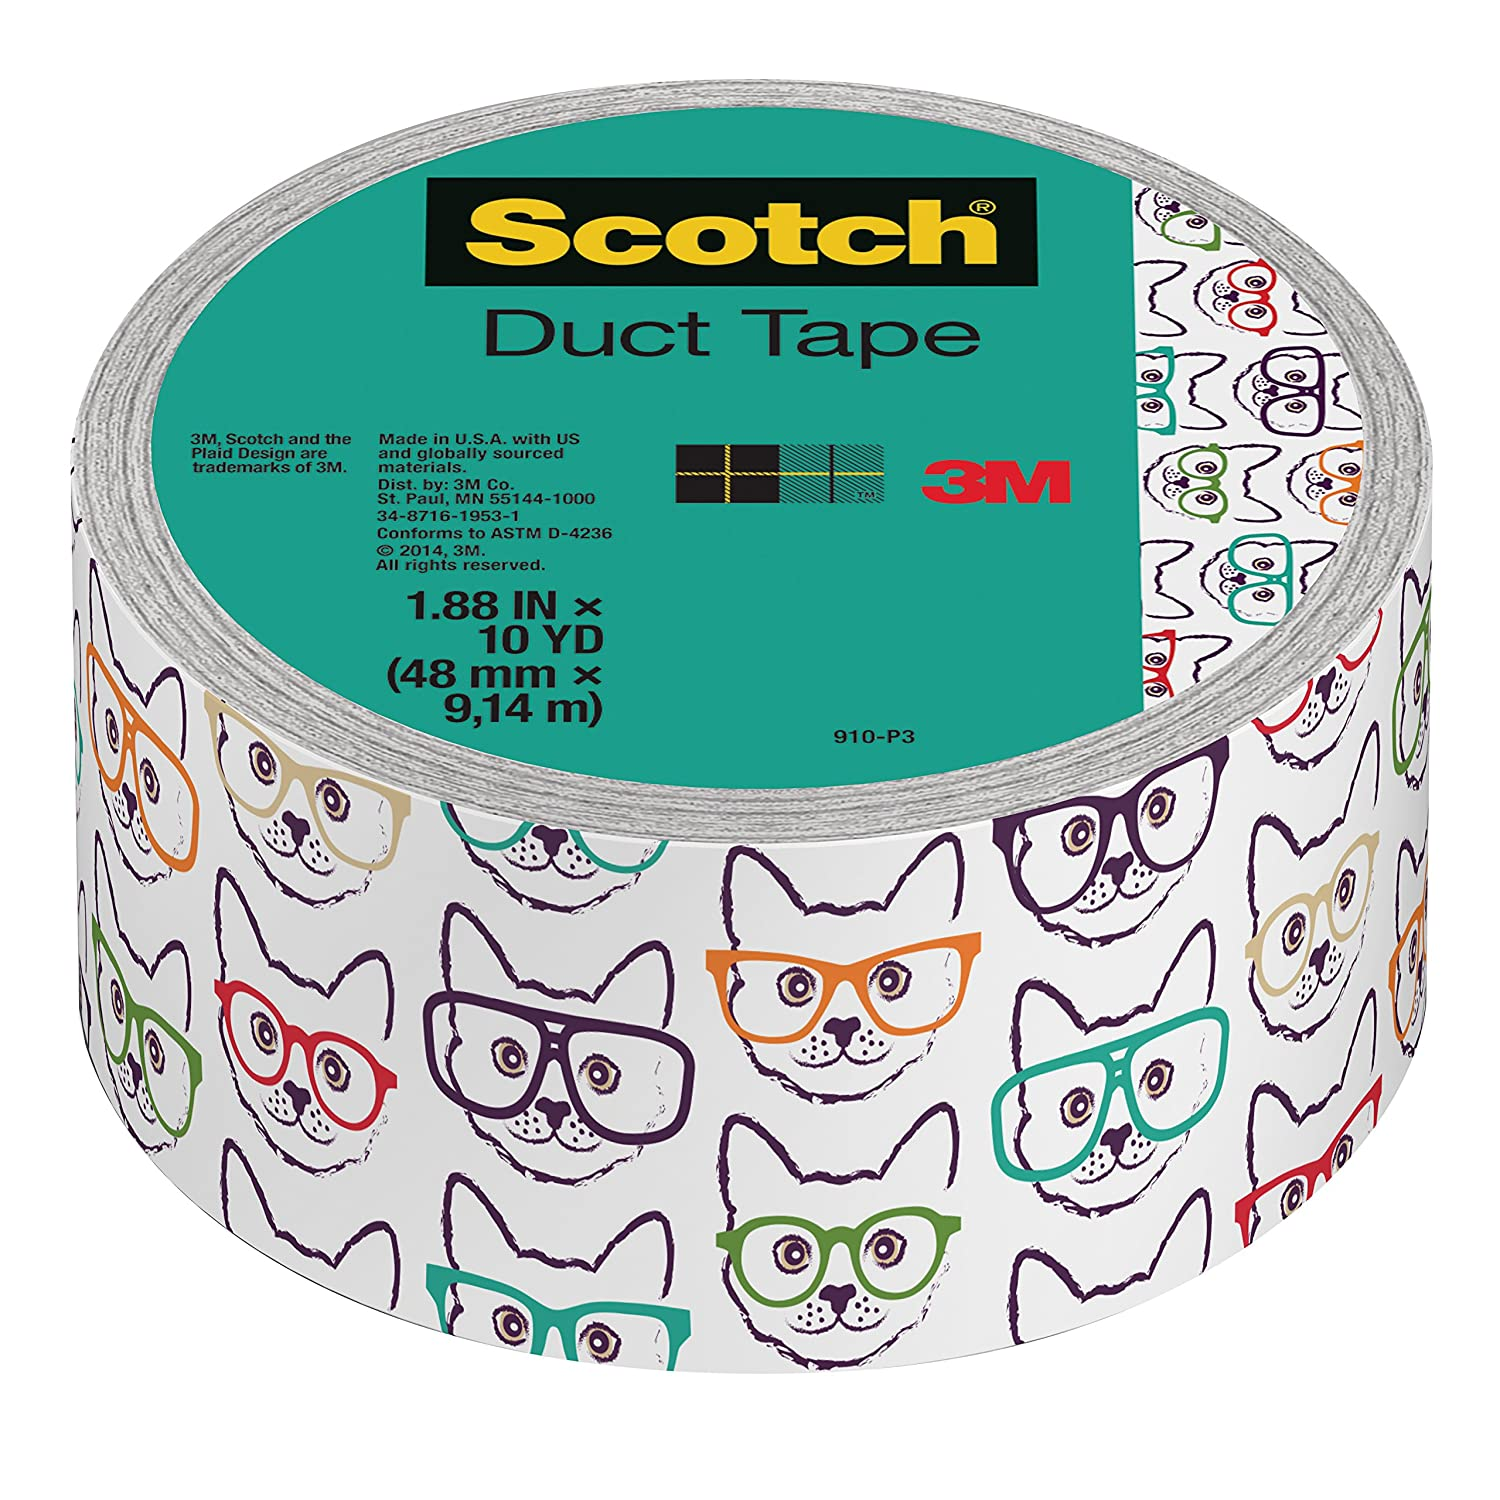 Scotch Duct Tape, 1.88 x 10 yd, Cat with Glasses (910-P3) 1.88 x 10 yd 3M Office Products